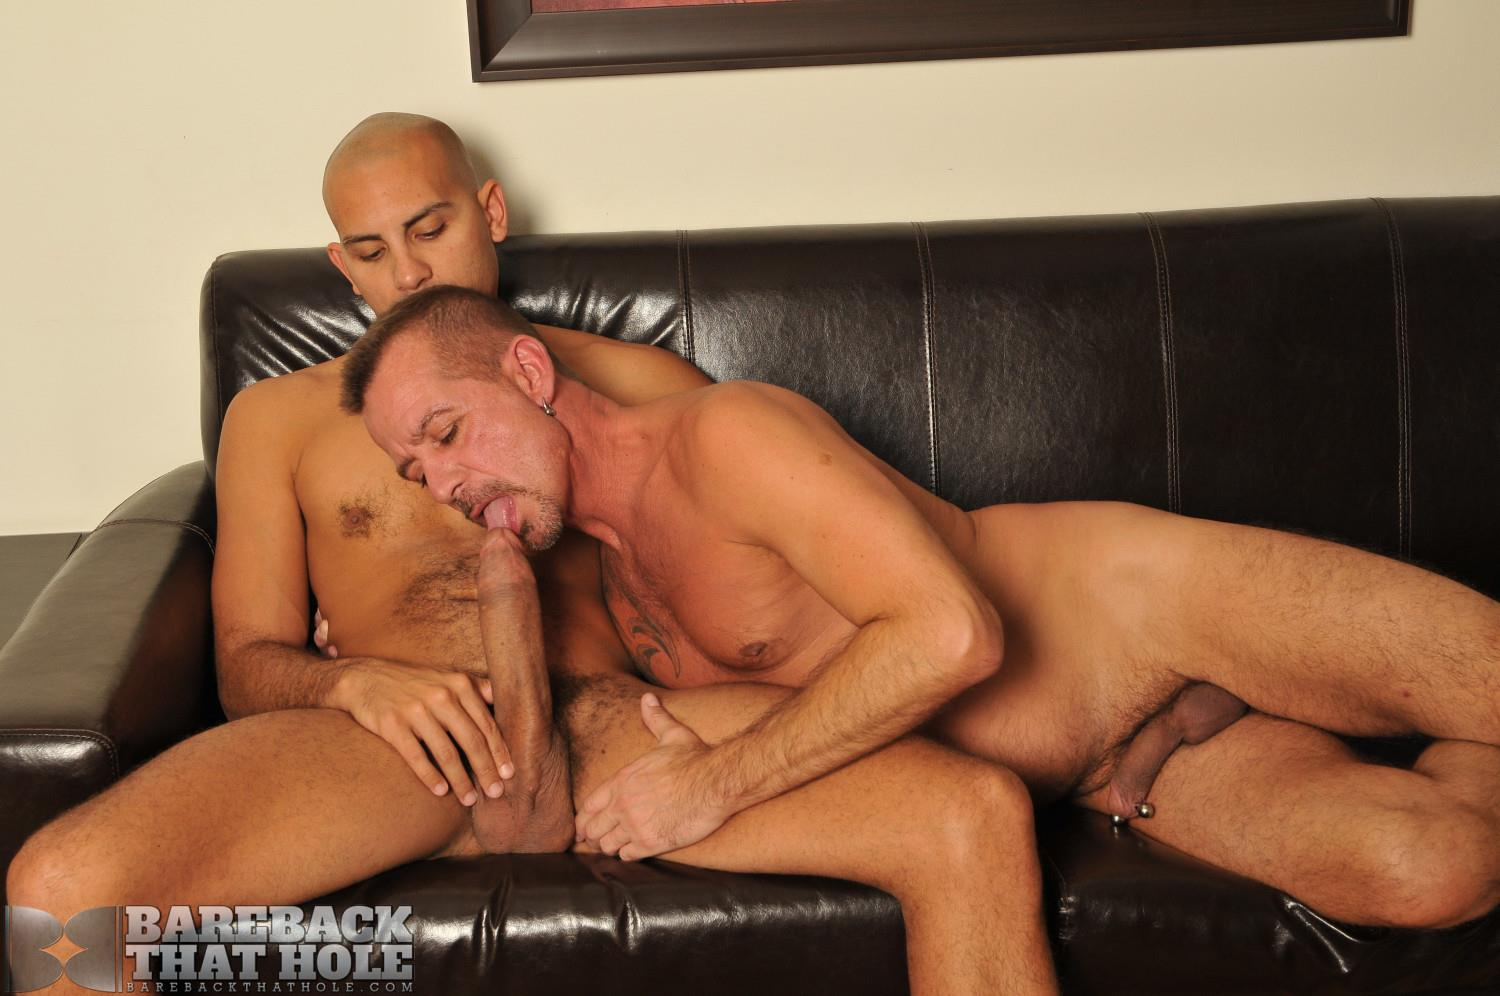 Bareback-That-Hole-Antonio-Biaggi-and-Pierce-Miller-BBBH-Huge-Cock-Bareback-Fucking-Amateur-Gay-Porn-14 Antonio Biaggi Barebacks A Pierced Daddy With His 12